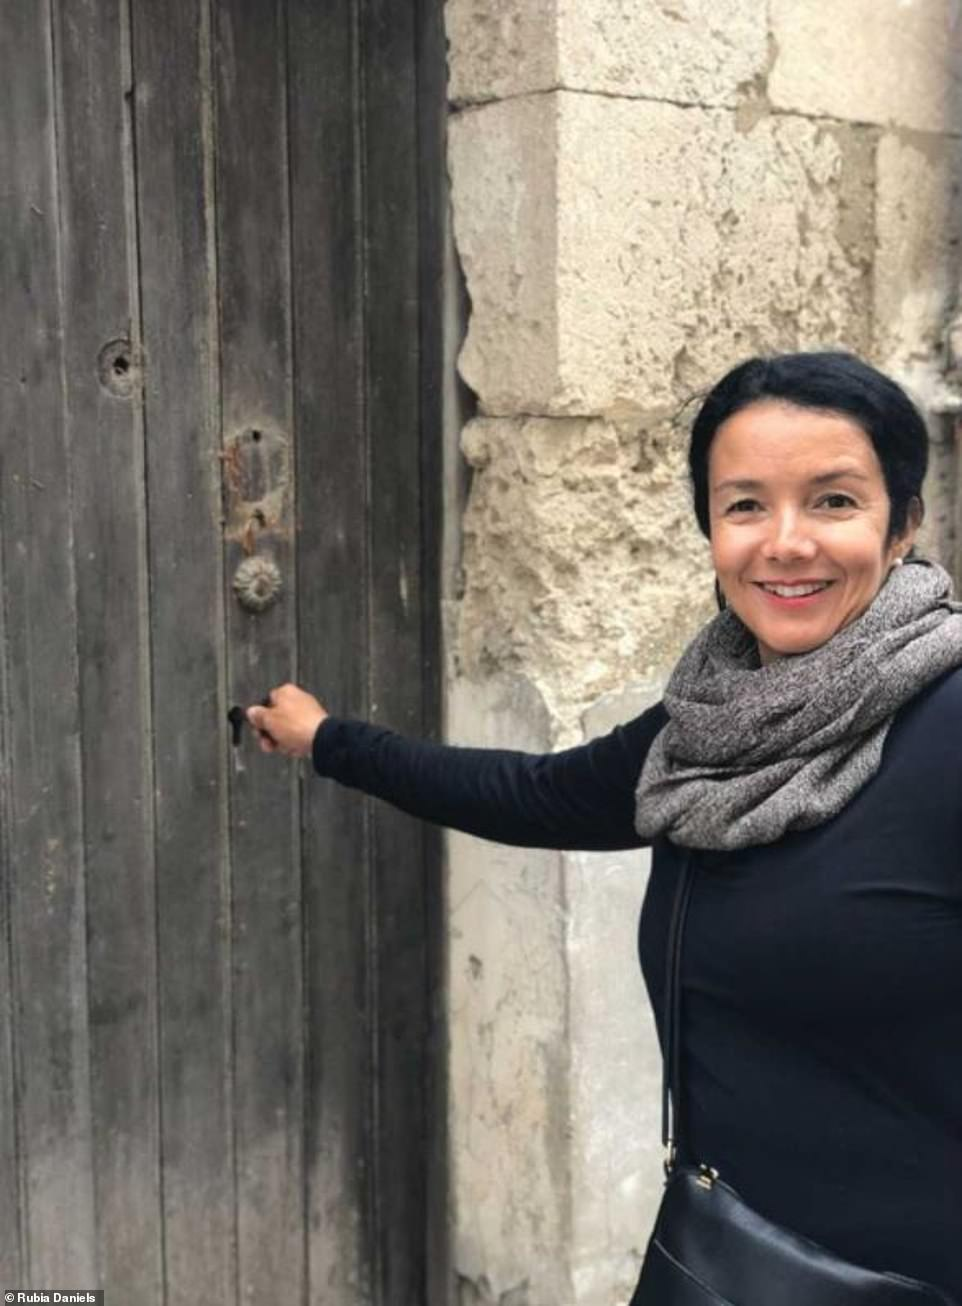 Score!Solar consultant and business owner Rubia Daniels was one of the first to buy a bargain-priced house in Mussomeli, Sicily, in the spring of 2019